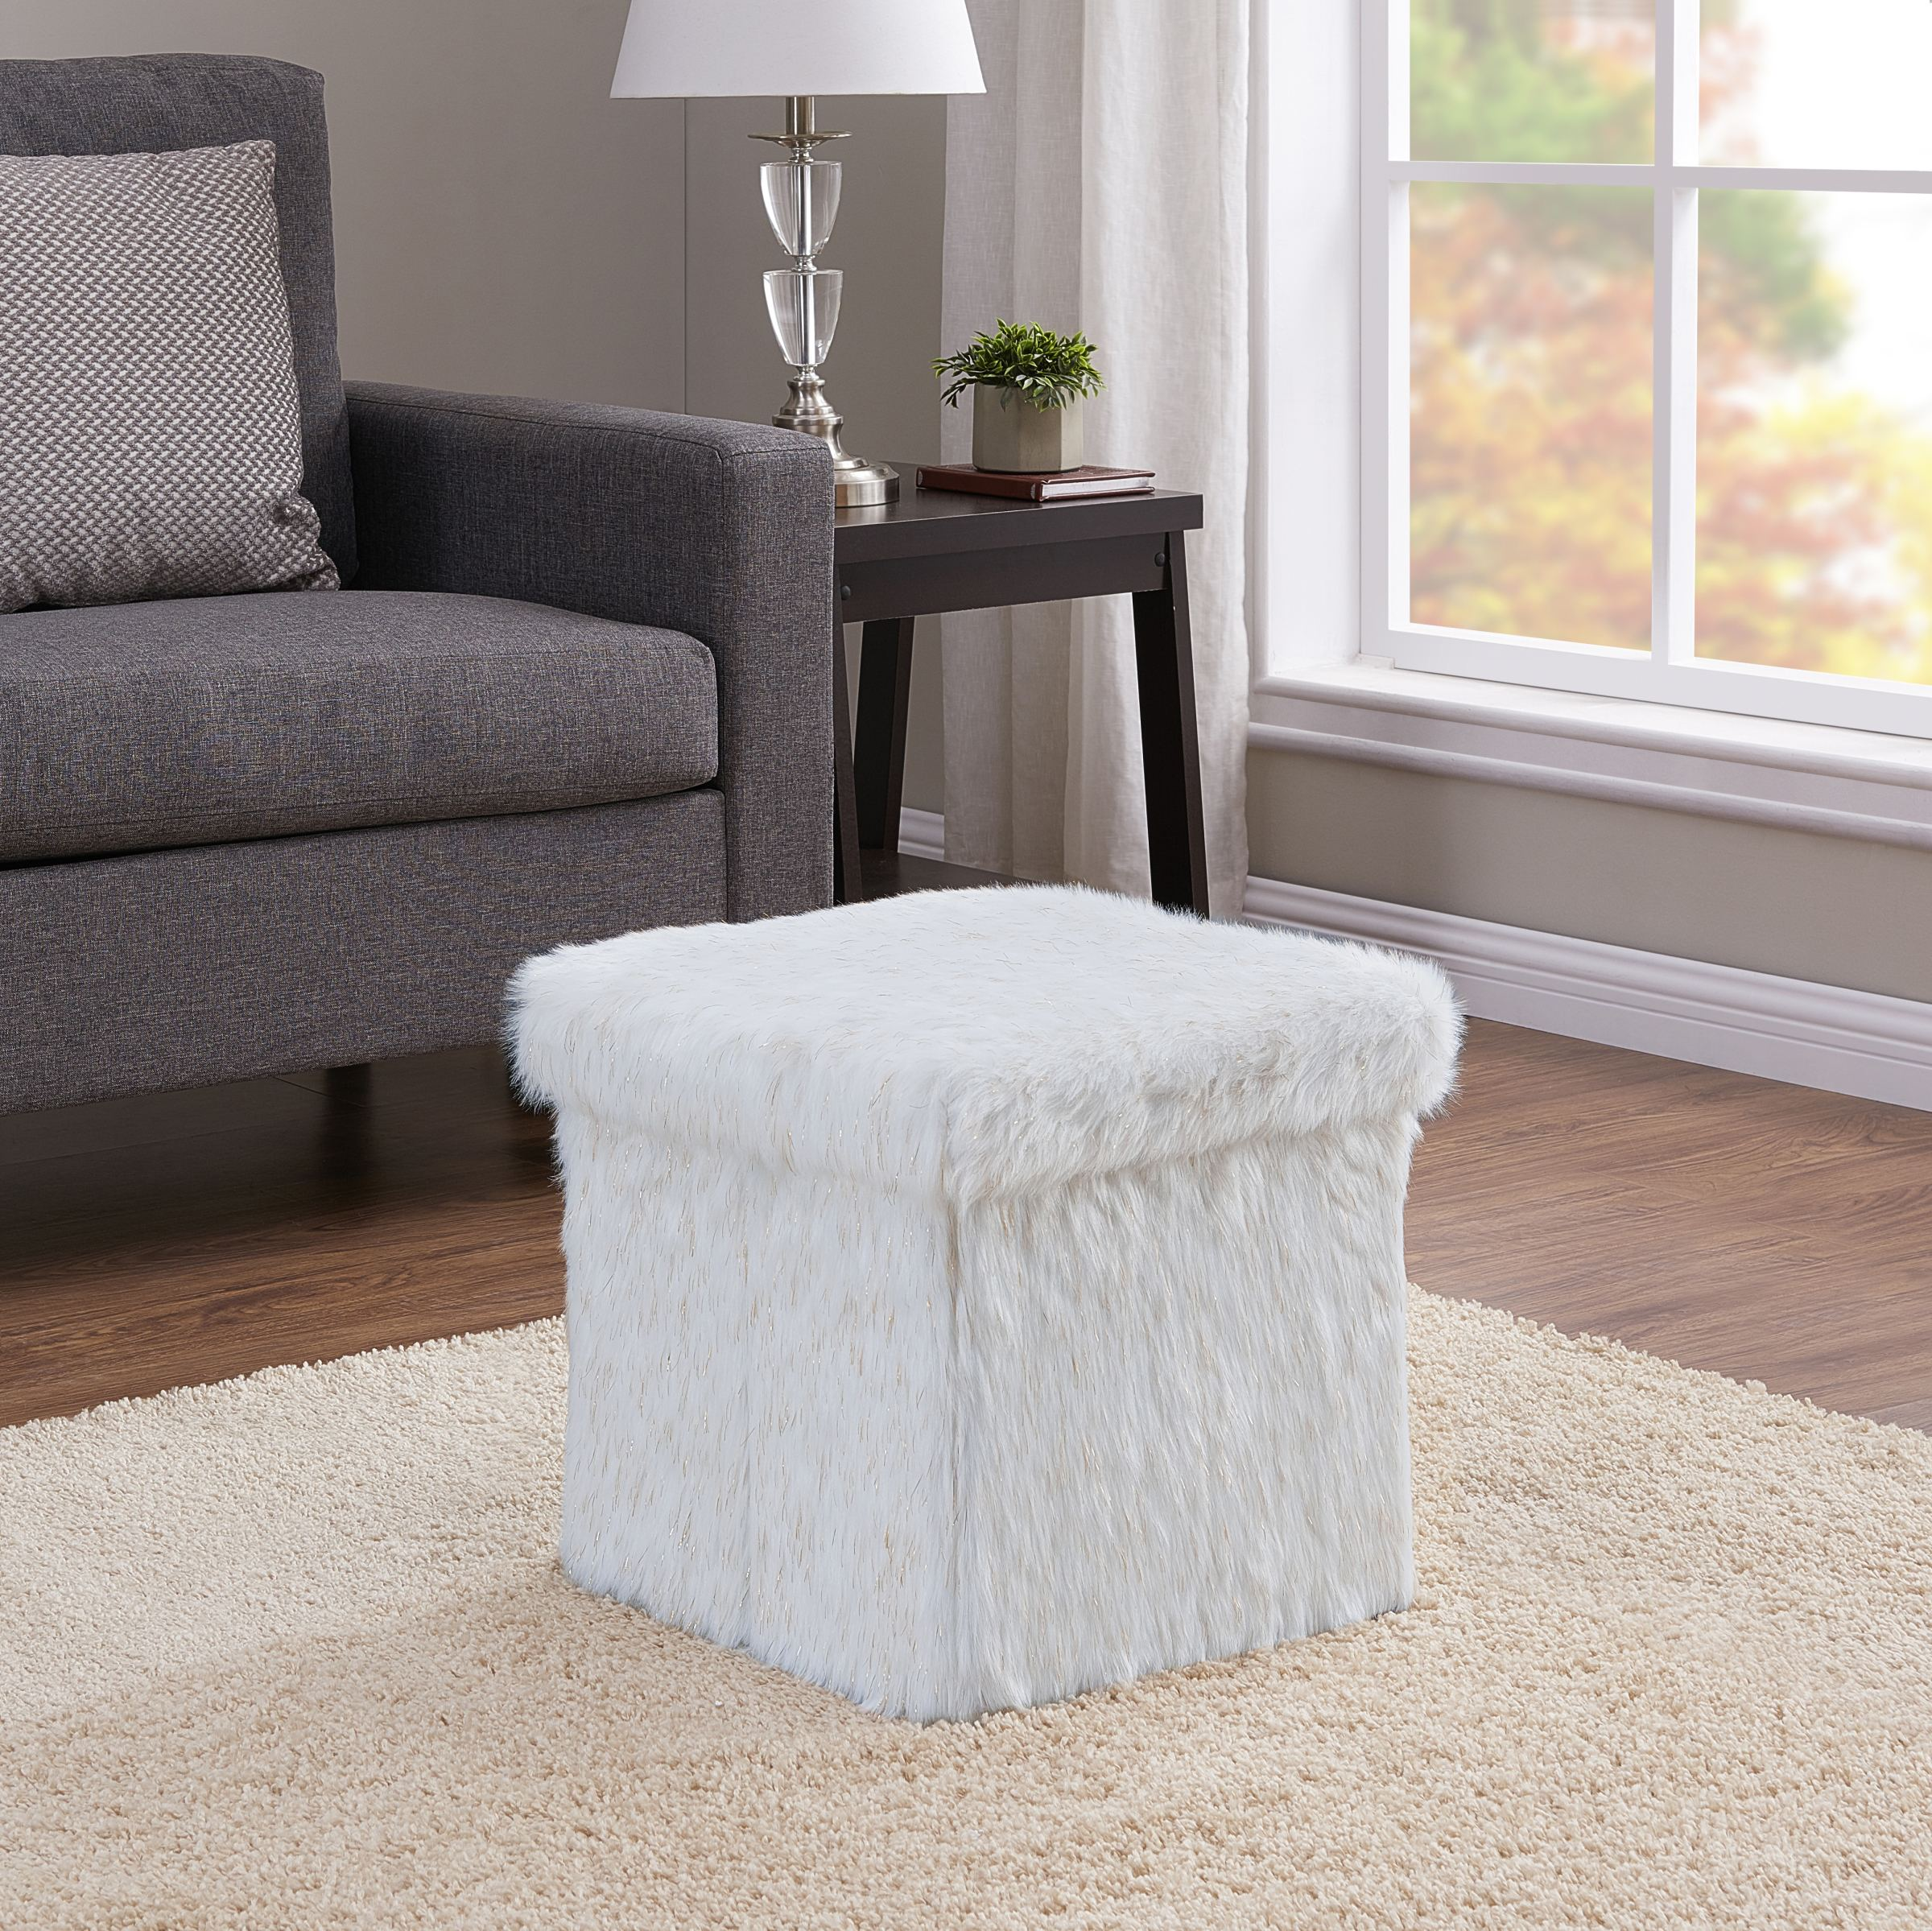 Mainstays Collapsible Storage Ottoman, Ivory and Gold Faux Fur